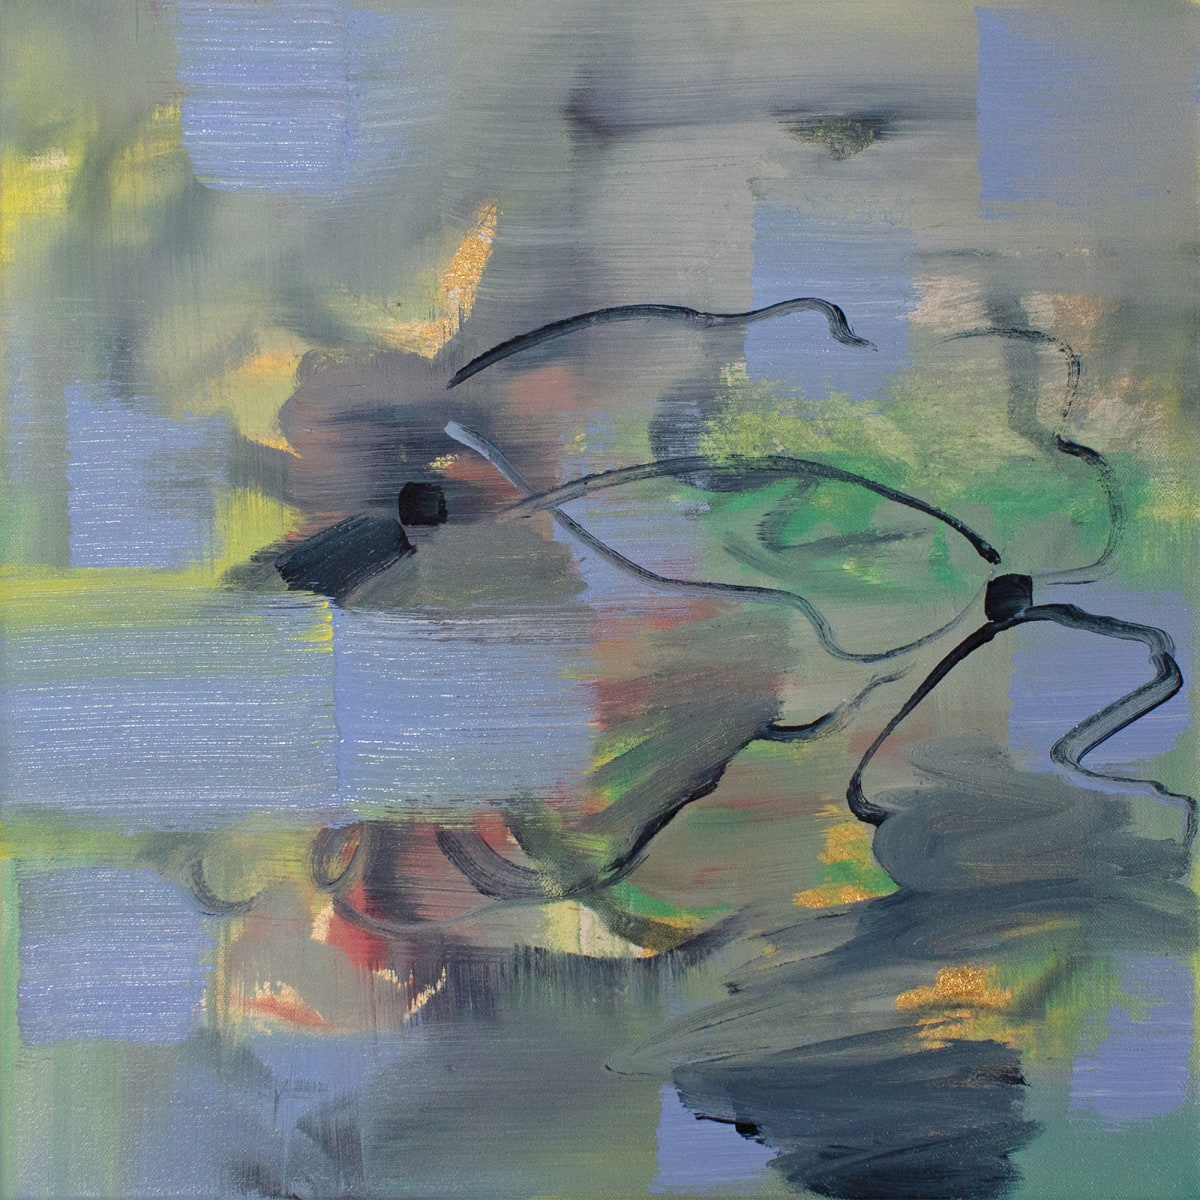 Abstract Study (floating) by Pamela Staker